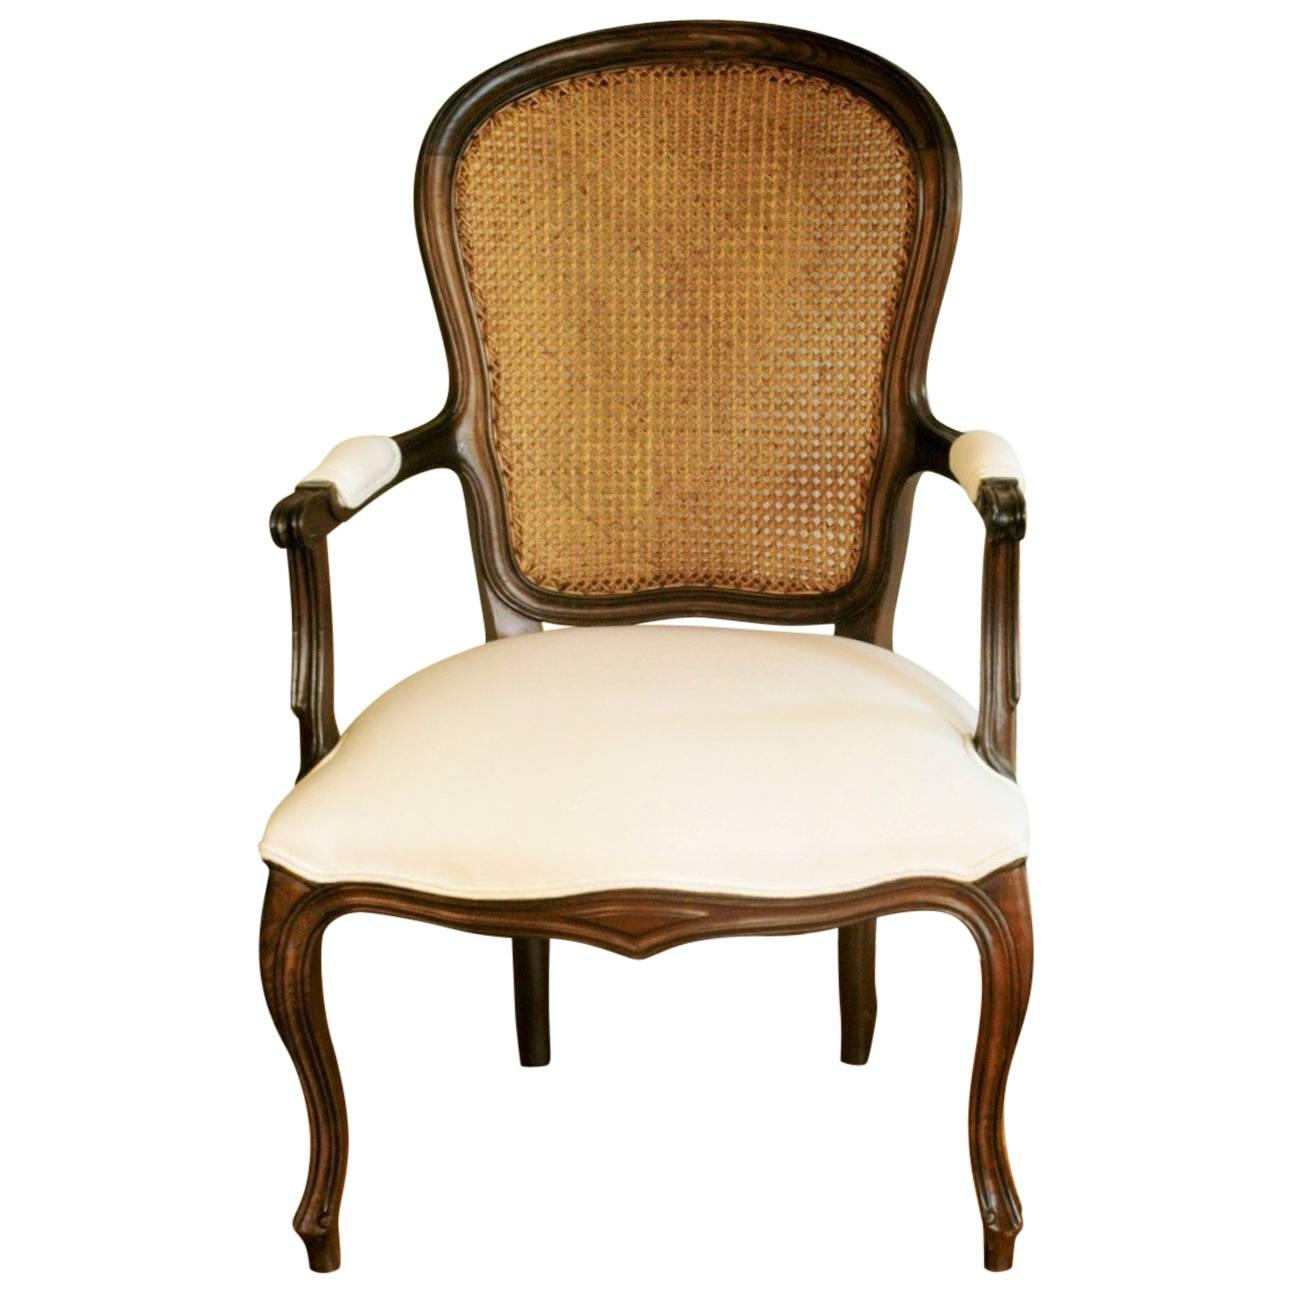 Country French Louis XV Style Oak Cabriolet Armchair, Bergere, Circa 1930